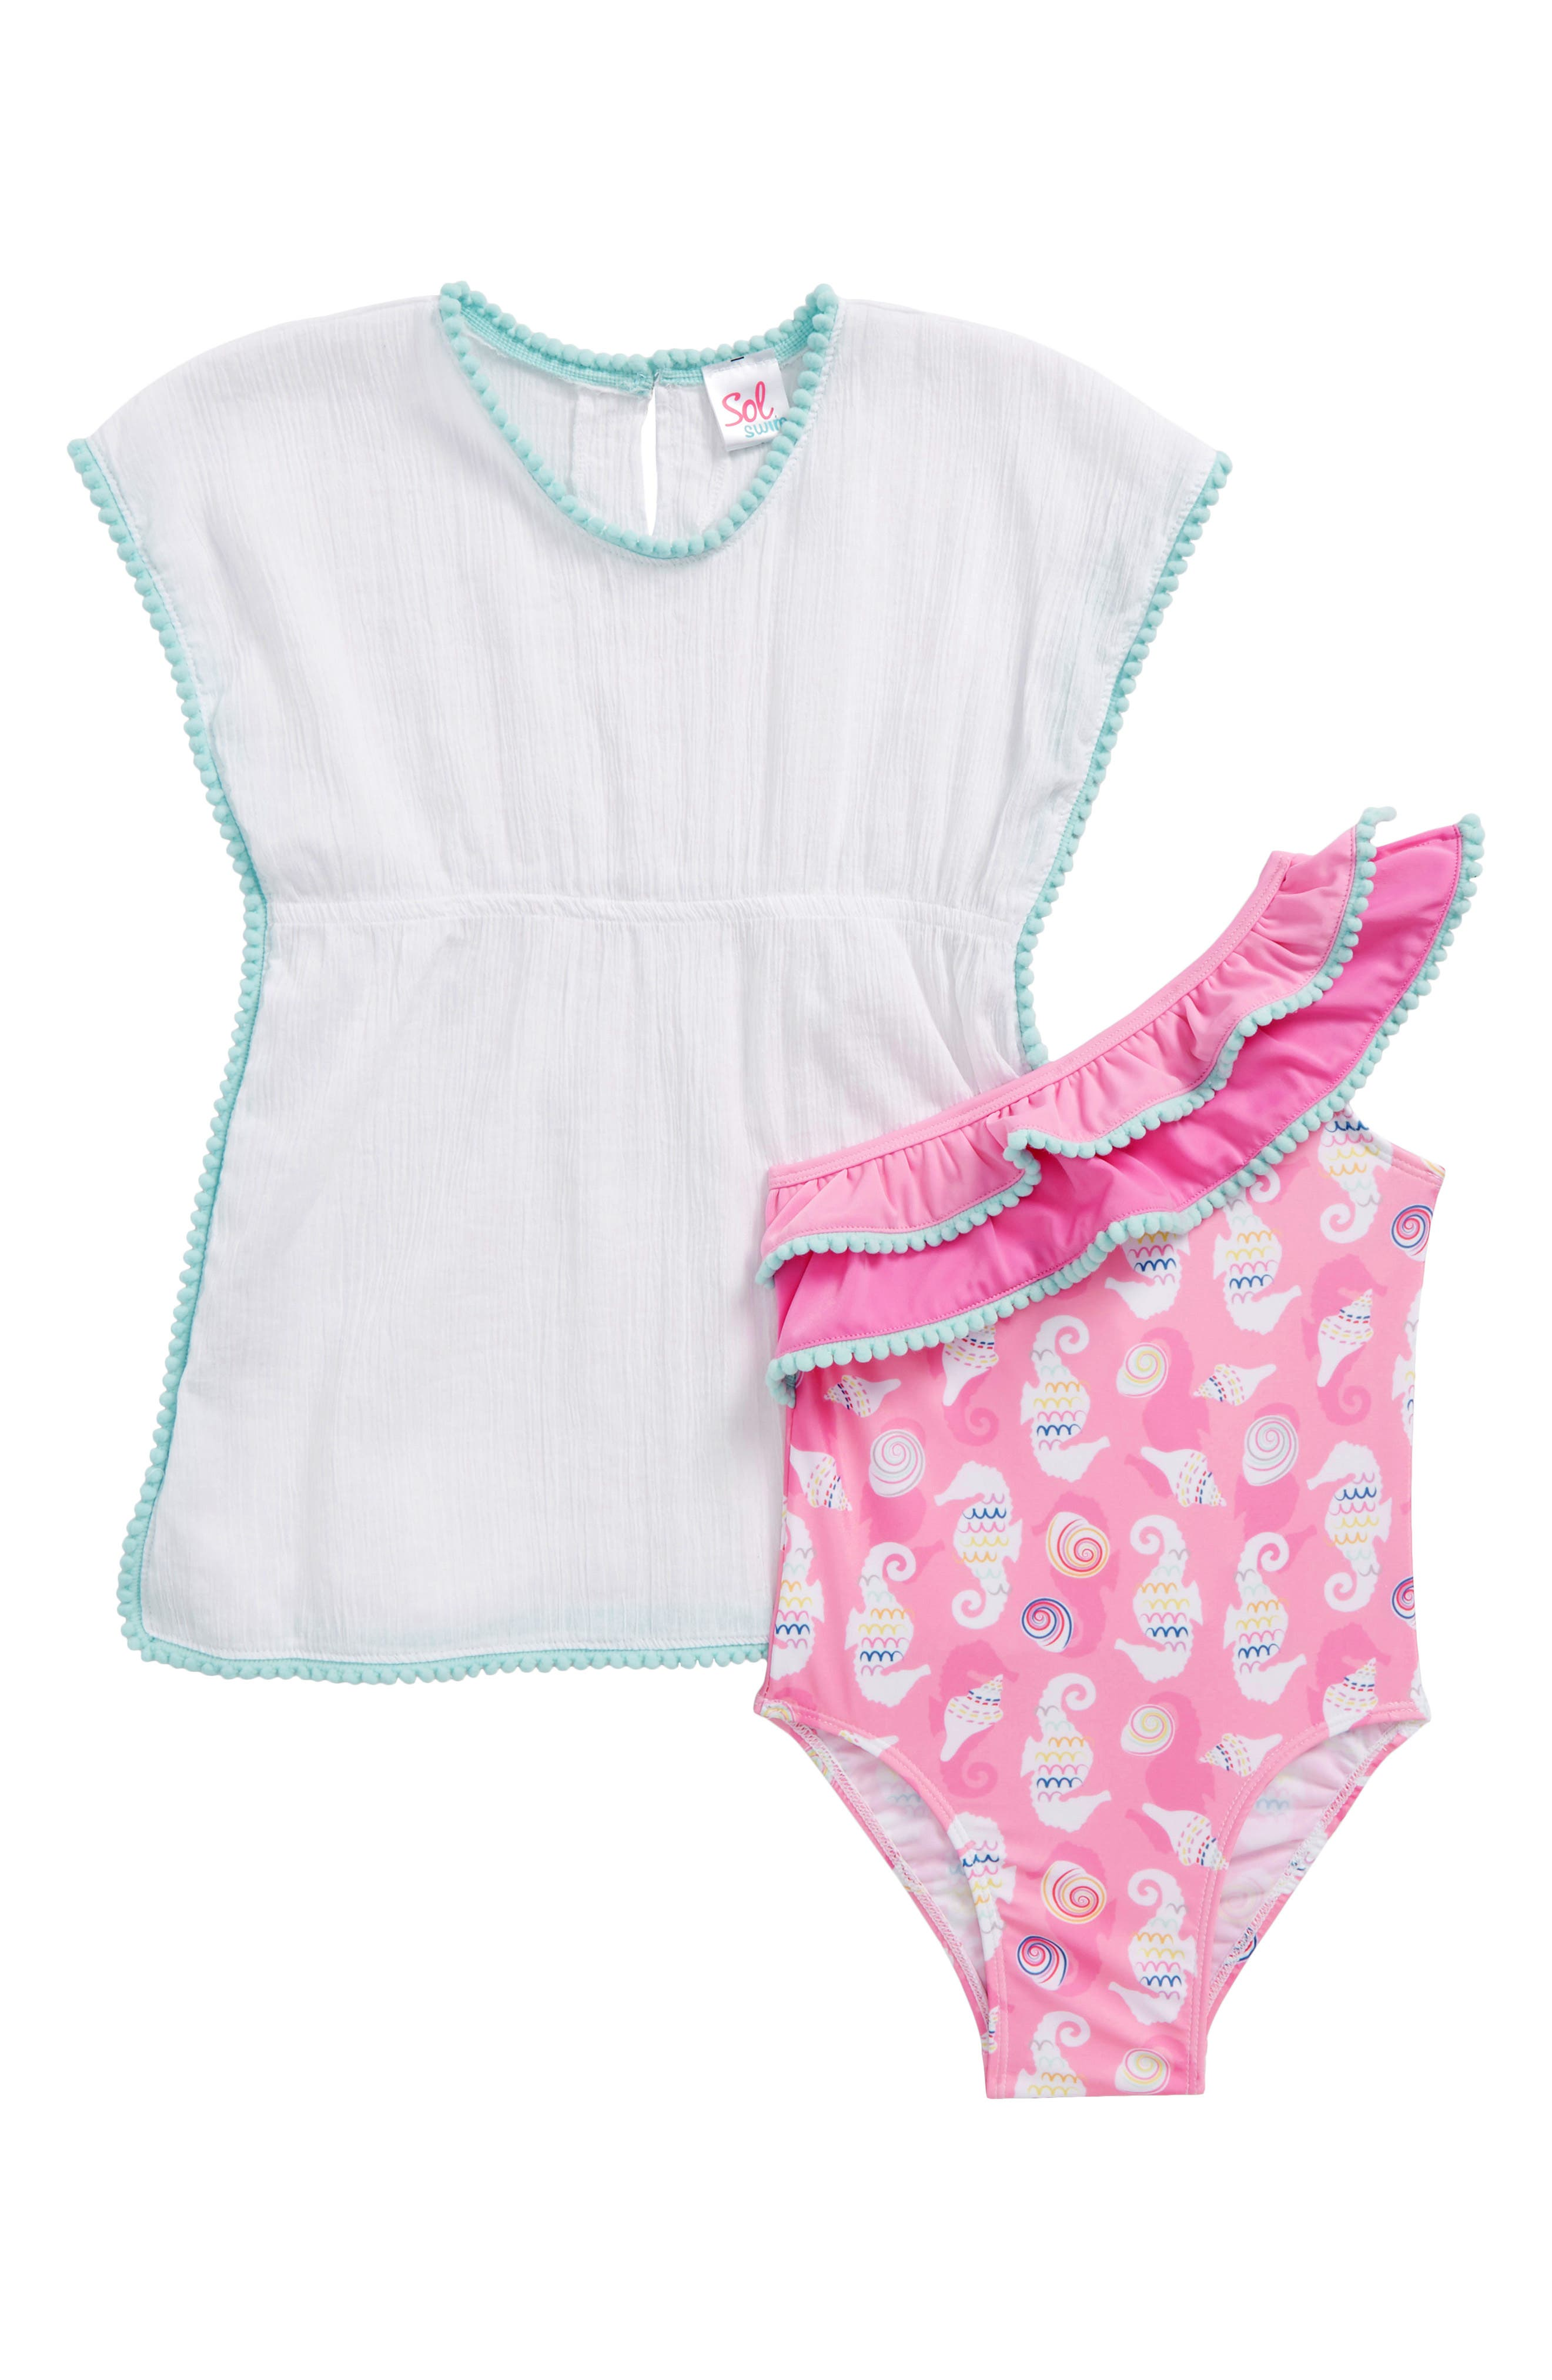 Sol Swim Seahorse One-Piece Swimsuit & Cover-Up Set (Toddler Girls & Little Girls)